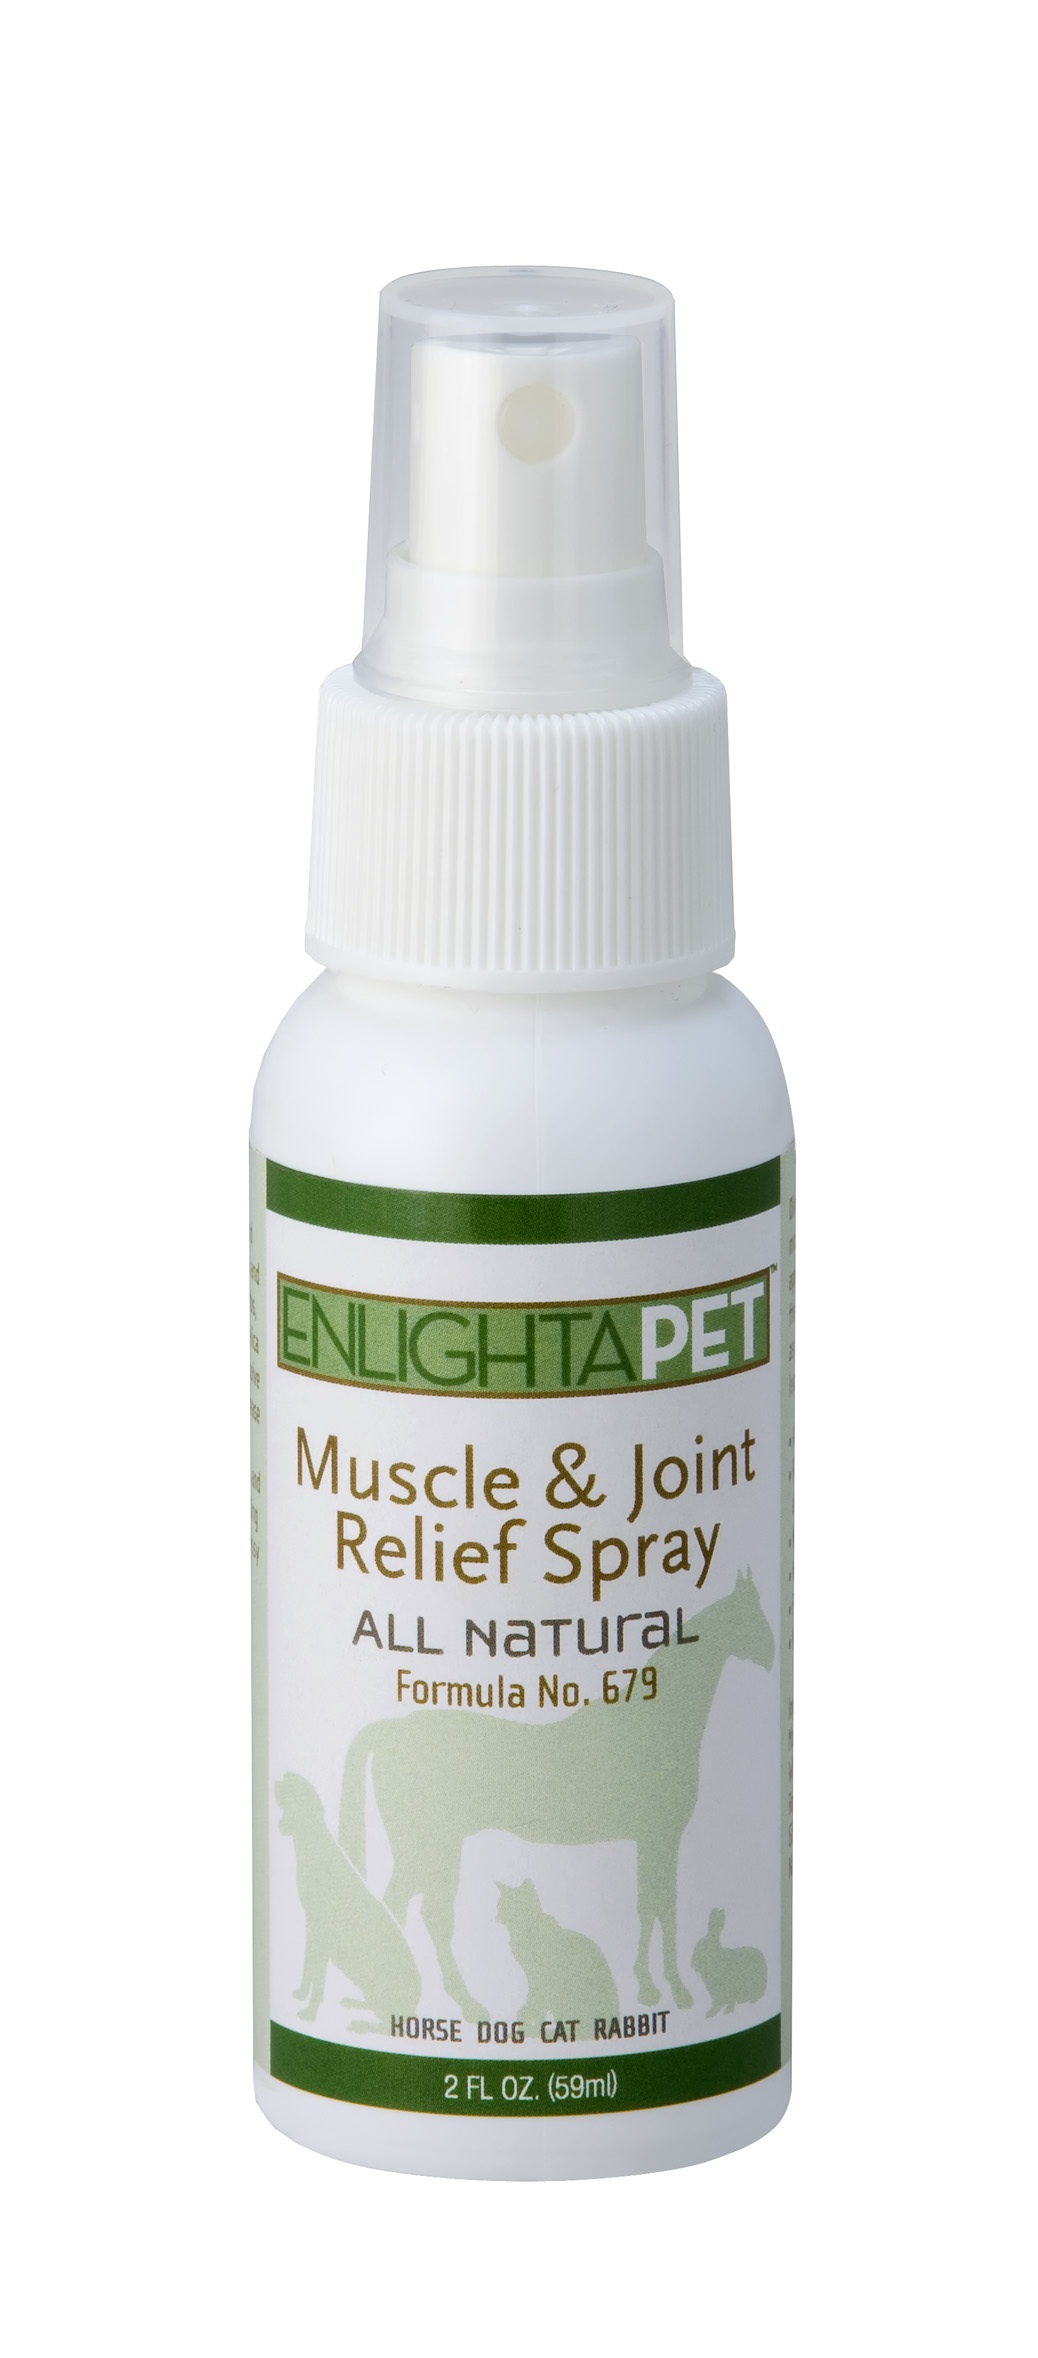 EnlightaPet Muscle & Joint Relief Spray, 2 oz